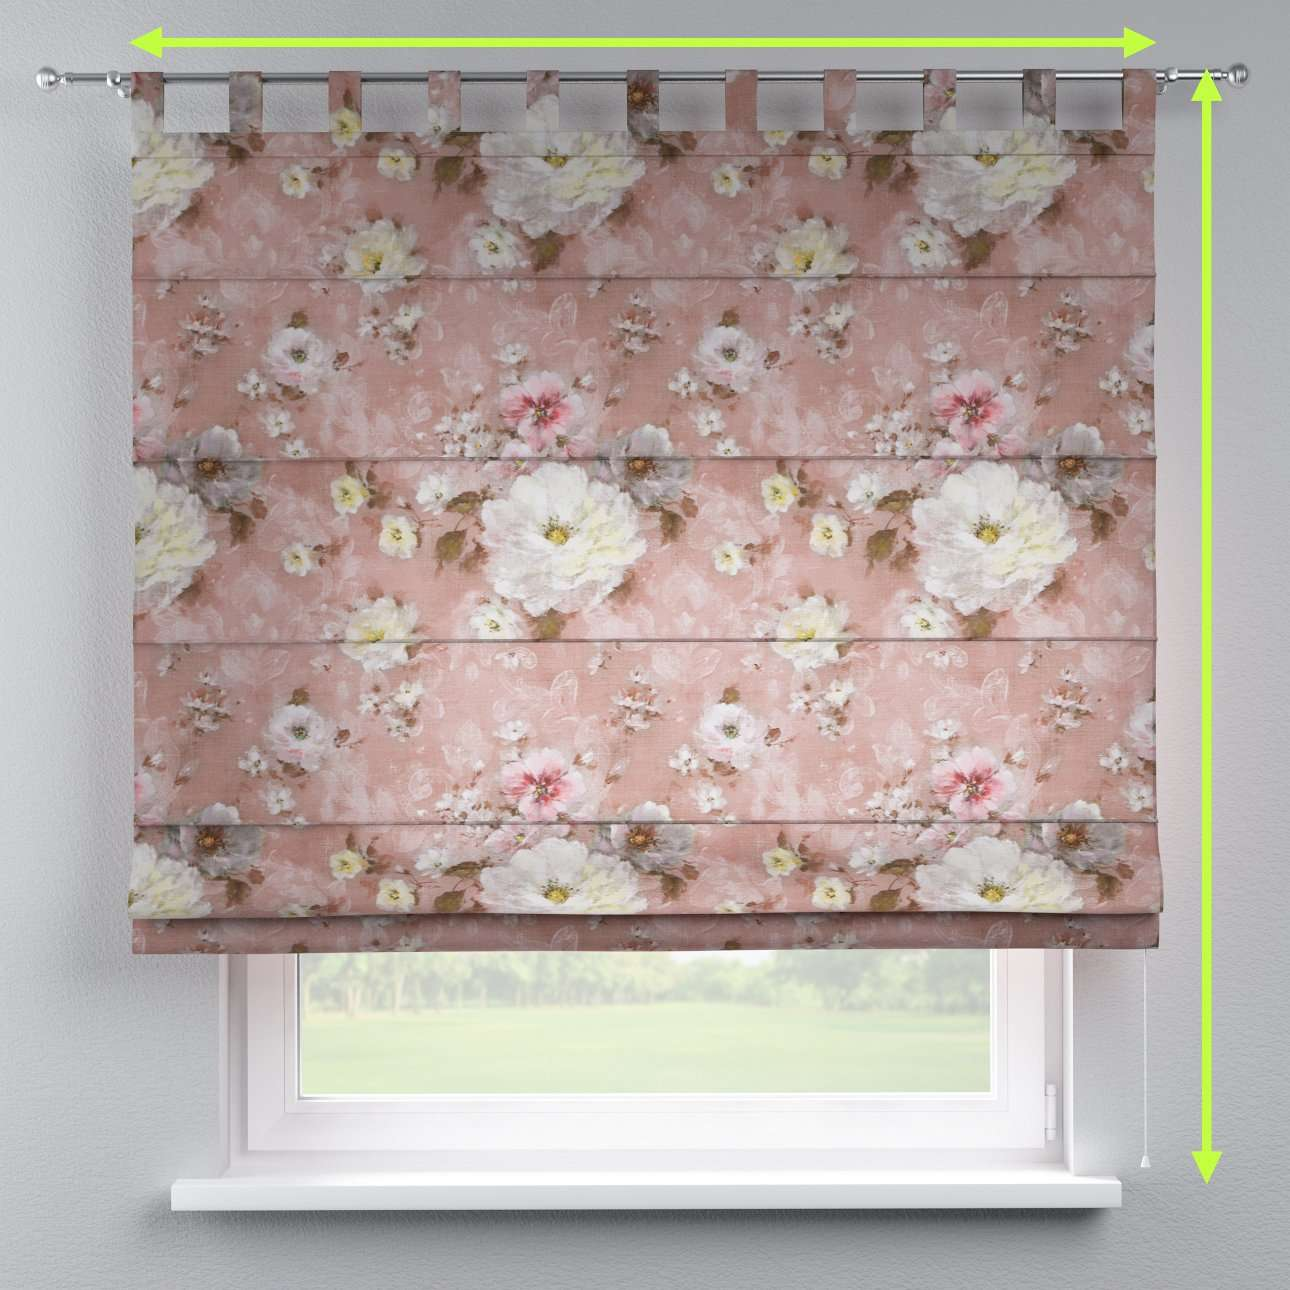 Verona tab top roman blind in collection Monet, fabric: 137-83